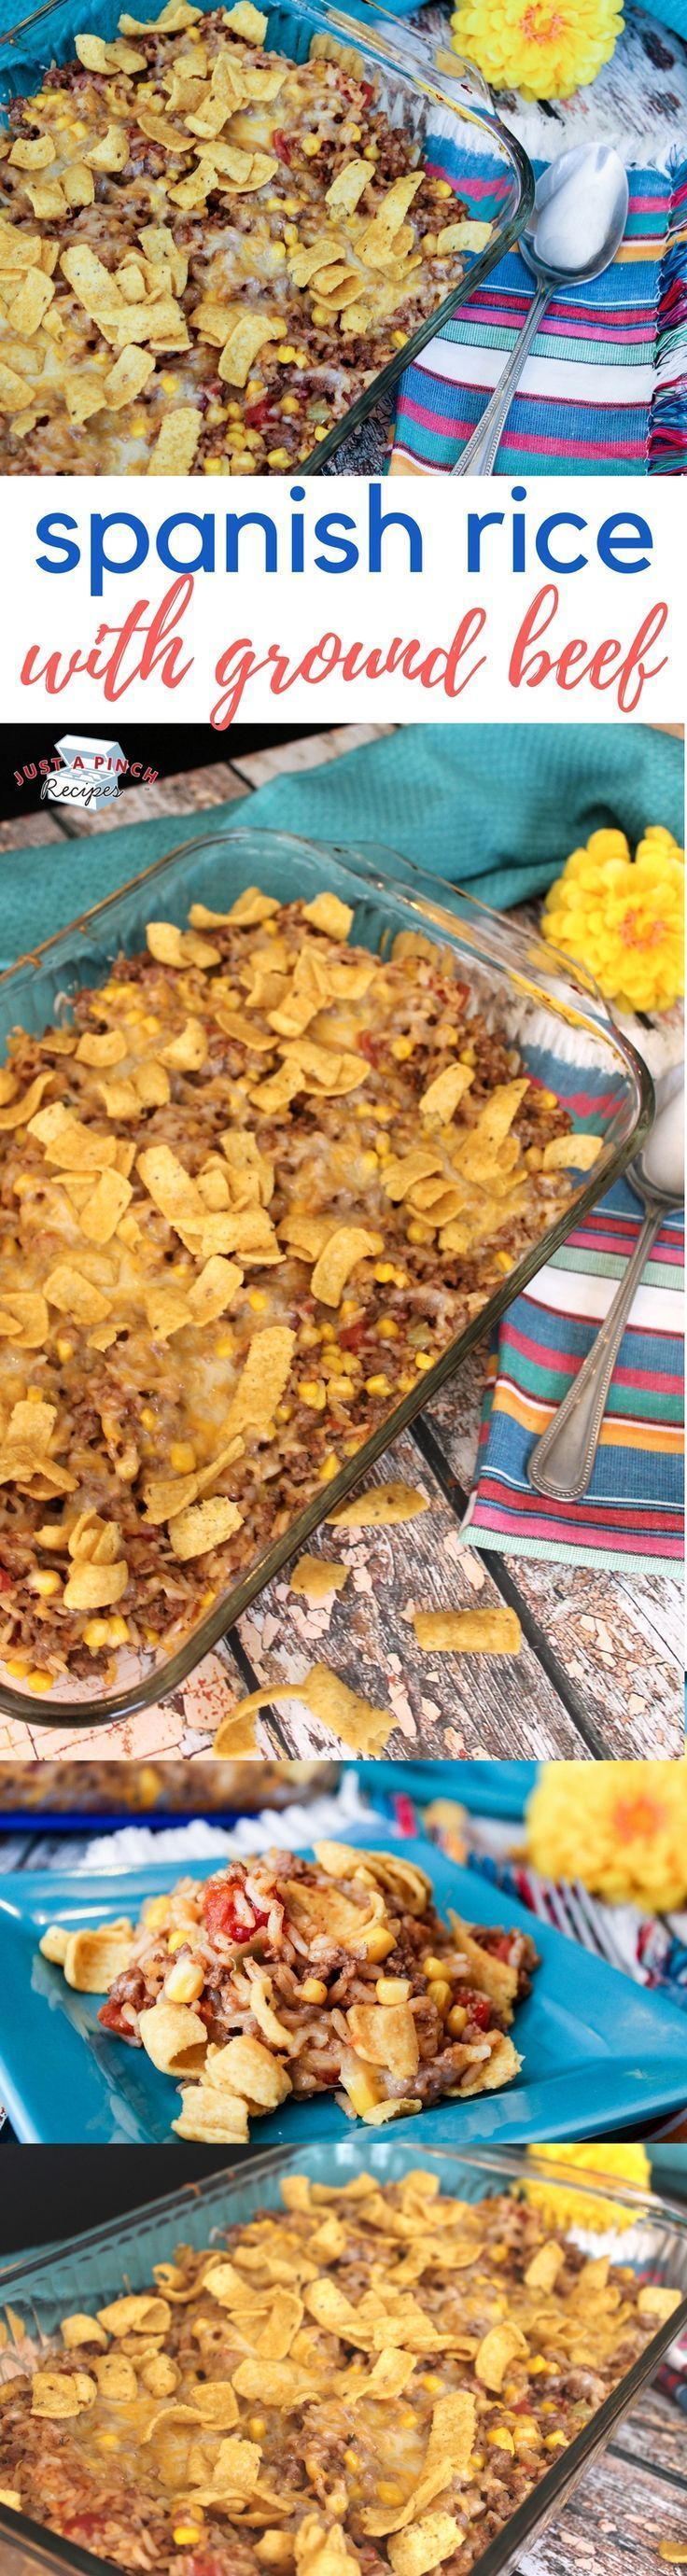 Easy spanish rice recipe! This is an easy, quick and economical dinner recipe that packs a big punch of flavor. #casserole #spanishrice #dinnertime #easyrecipe